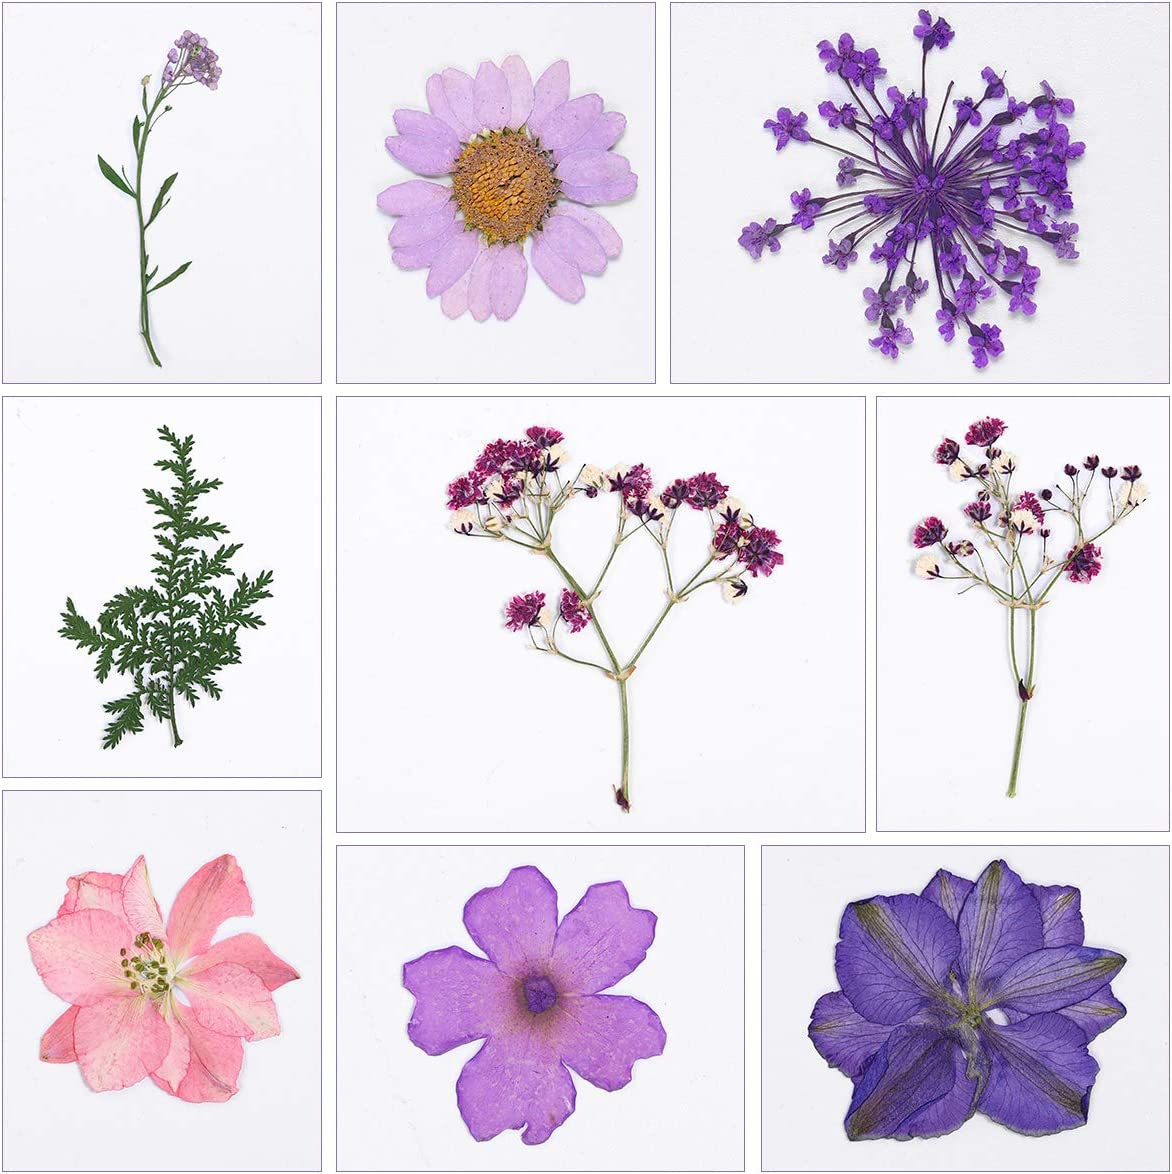 Real Dried Pressed Flowers, DIY Flower Pink Purple Larkspur Natural Pressed Flowers for Crafts Making, 30pcs